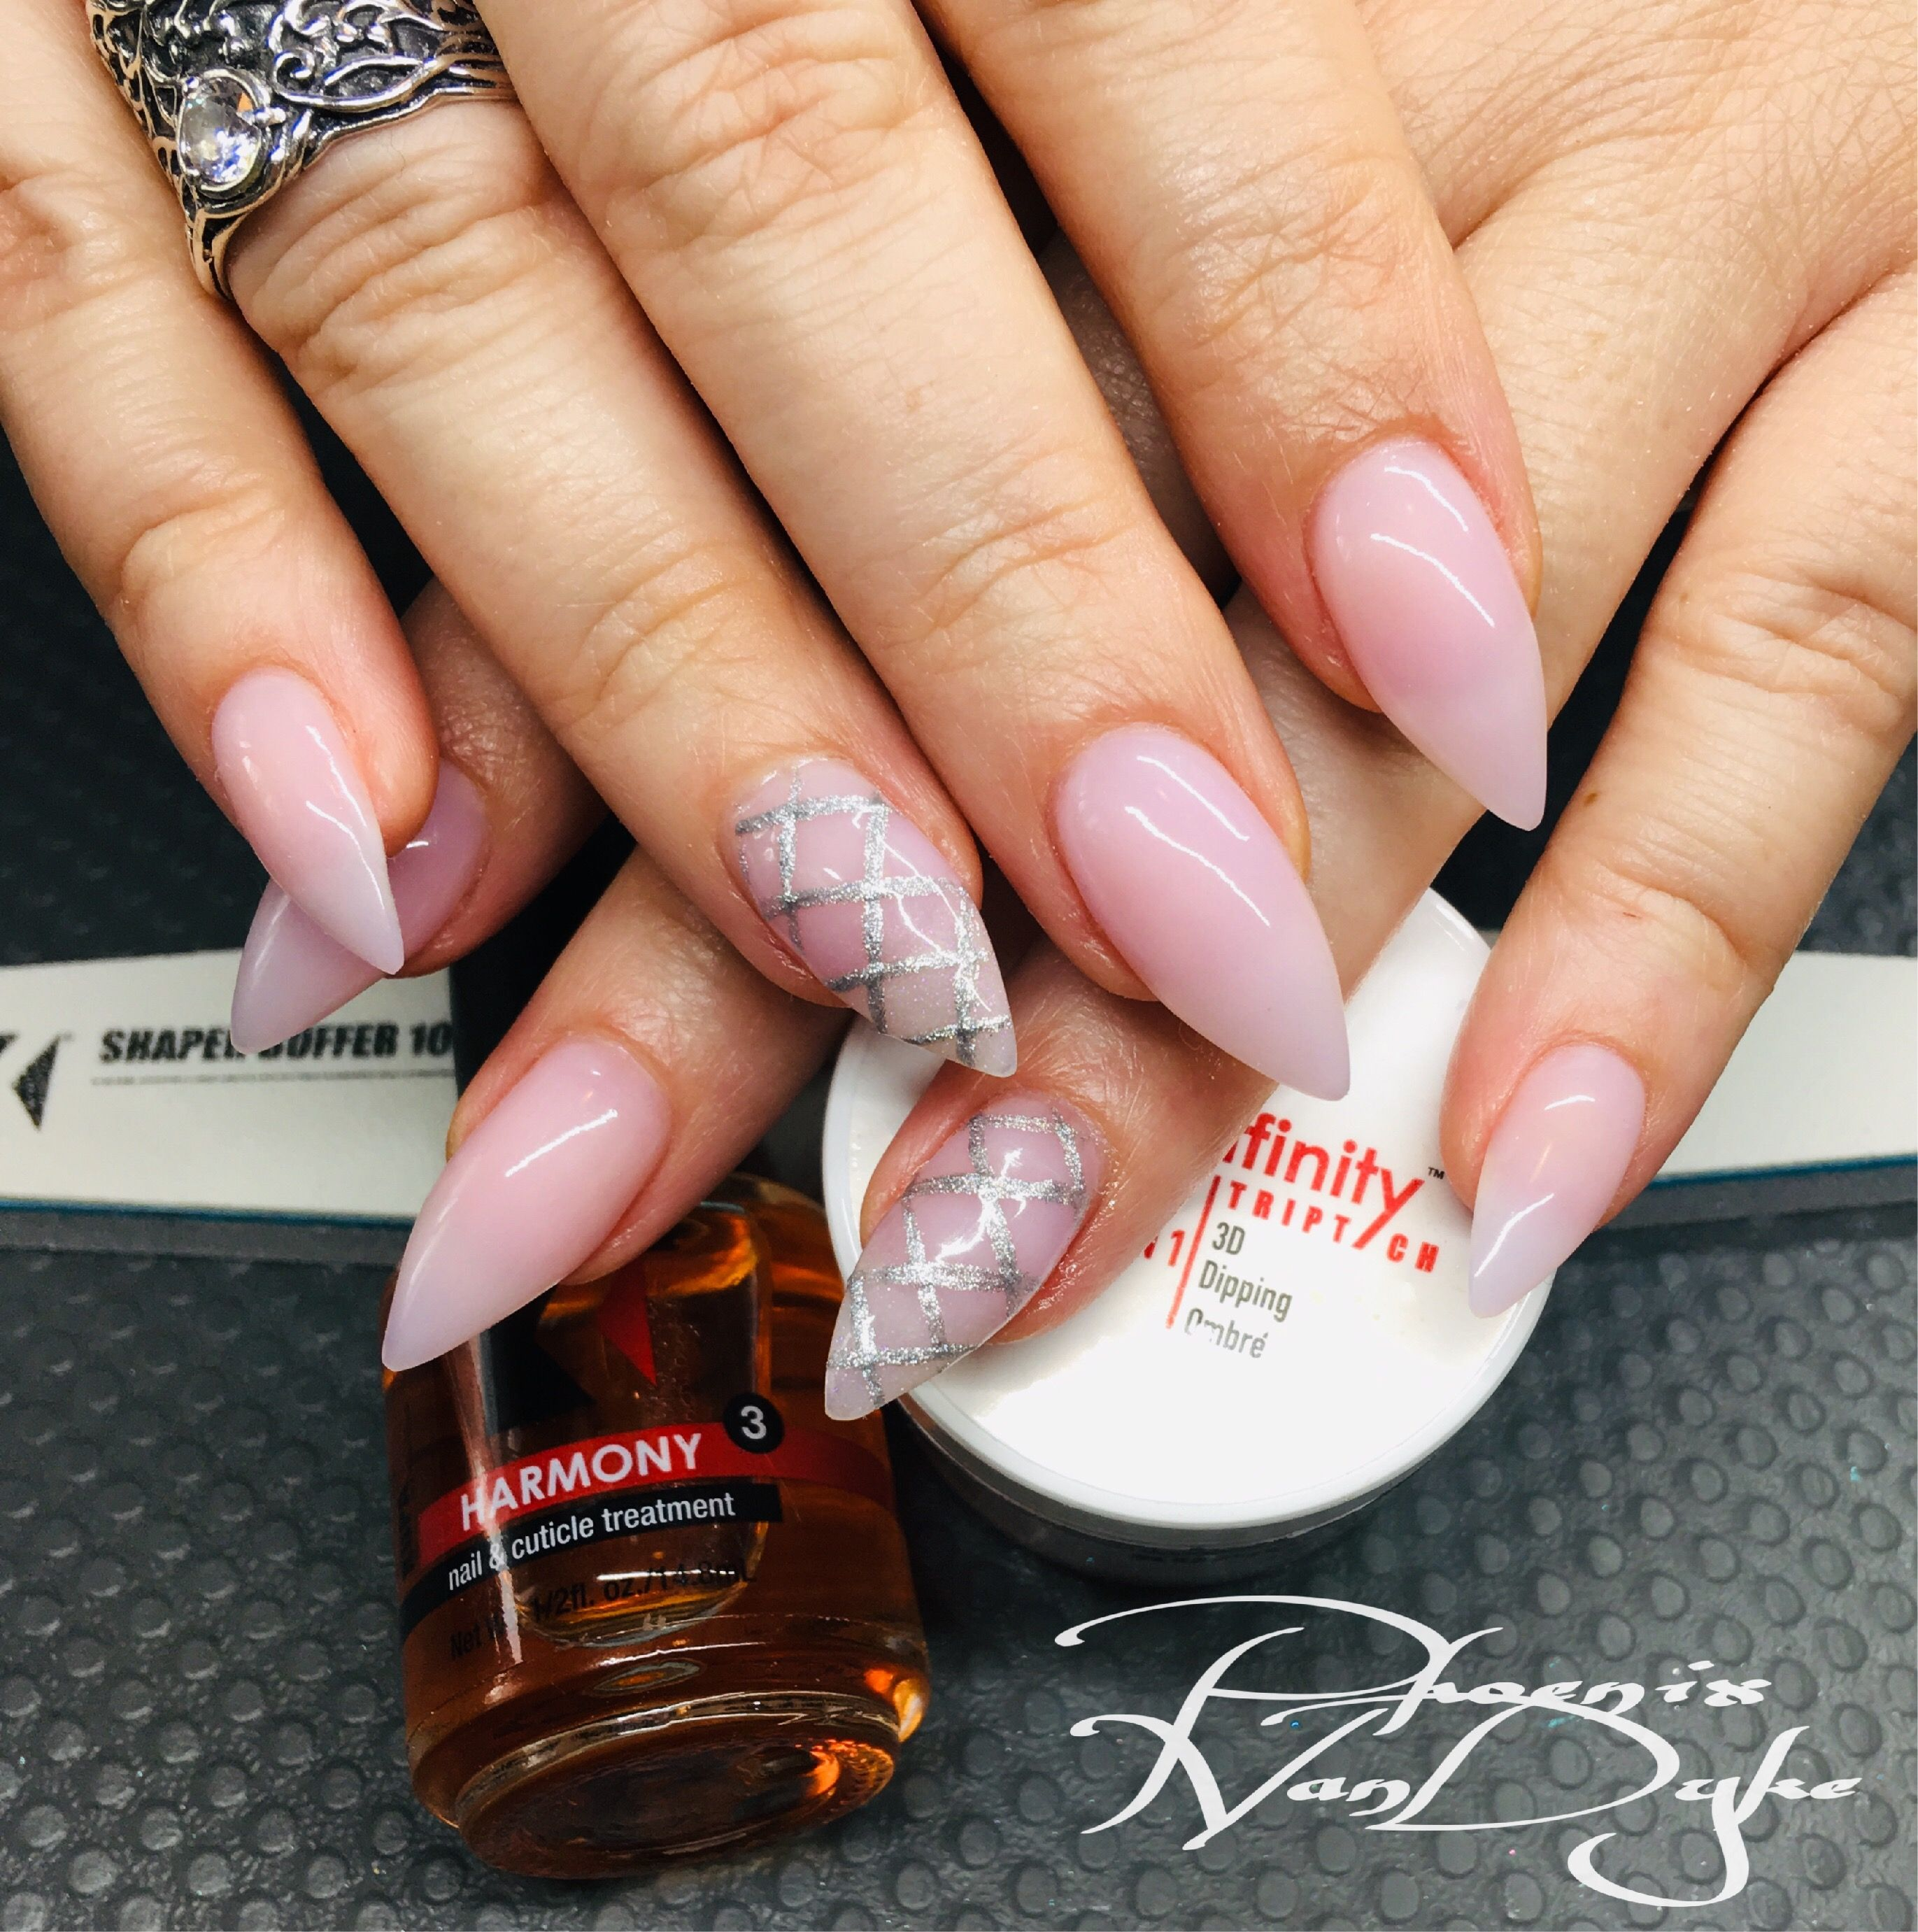 Just A Pretty Pink Set Of Nails Beehived Harlot Dipfinity Can Be Used As An Acrylic Polymer Dipfinitytriptych Kupainc Kupa Nails Acrylic Nails Nail Designs